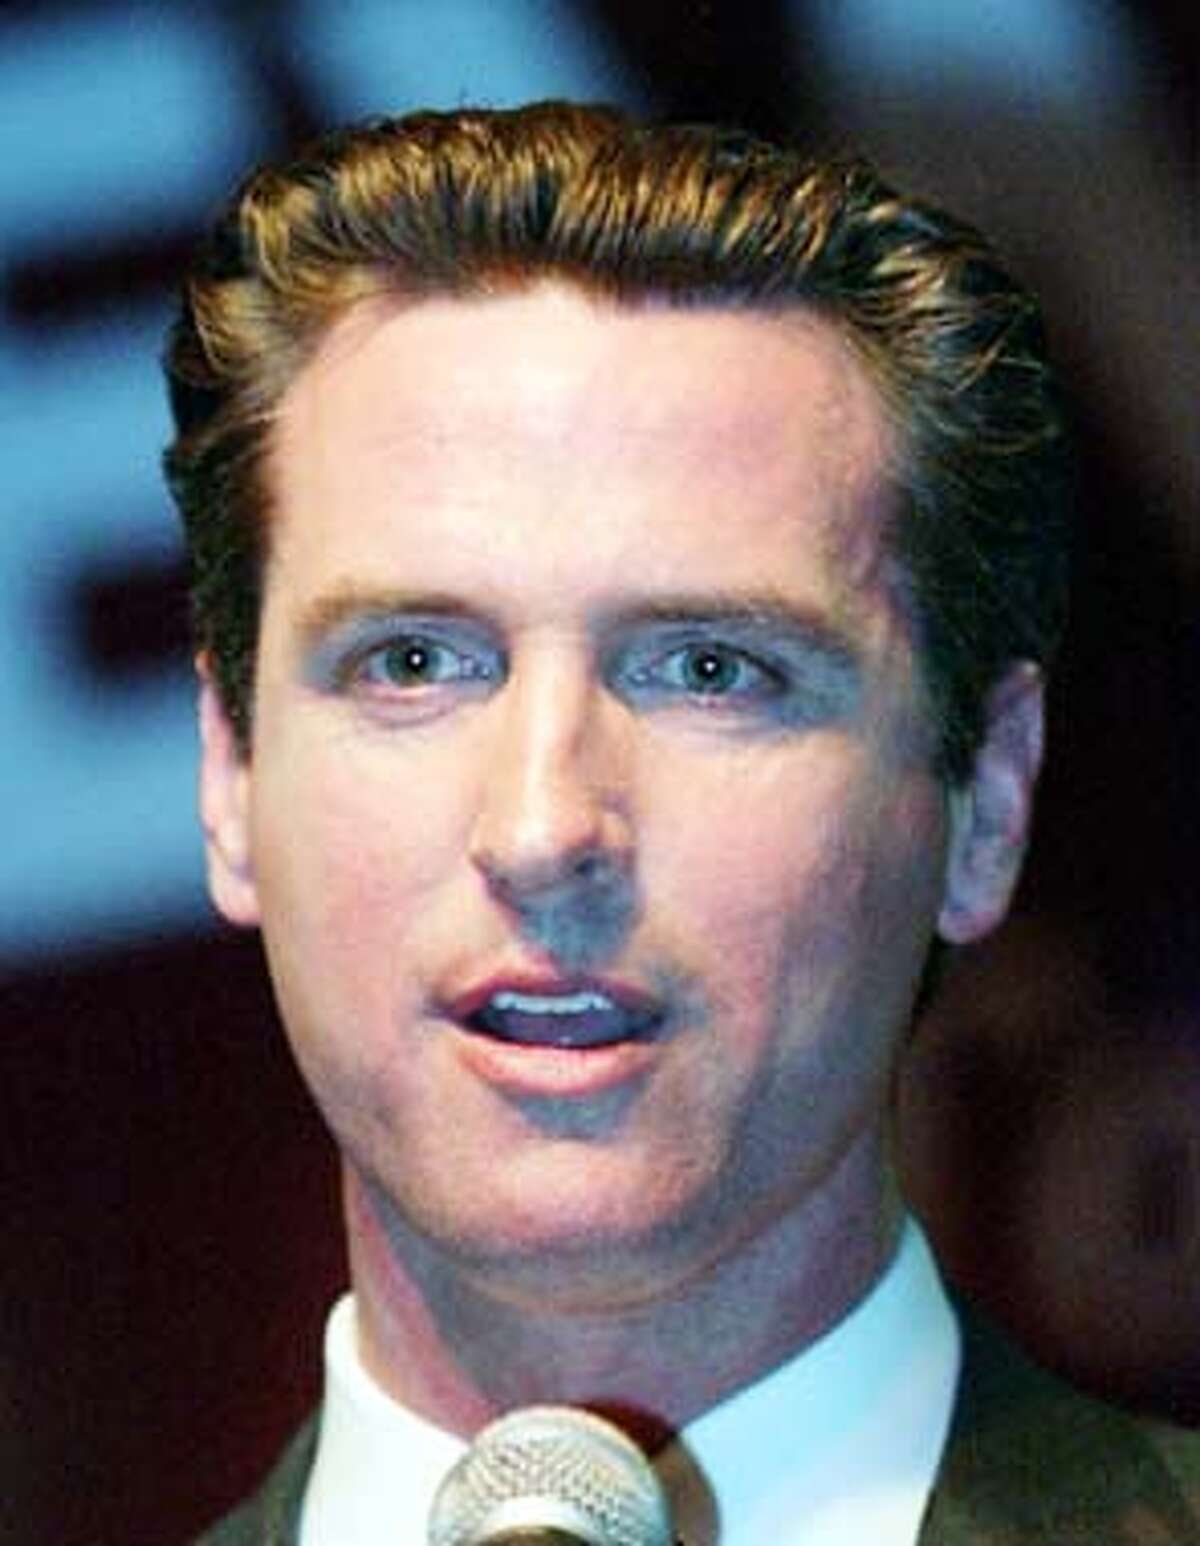 San Franicisco mayoral candidate Supervisor Gavin Newsom addresses supporters at an election night party in San Francisco, November 4, 2003. Newsom came in first in a field of six major candidates and will face fellow supervisor Matt Gonzalez in a runoff election in December. REUTERS/Lou Dematteis Matt Gonzalez Matt Gonzalez is picking up voters from Alioto, Ammiano and Leal, the poll shows. Matt Gonzalez is picking up voters from Alioto, Ammiano and Leal, the poll shows. Matt Gonzalez Matt Gonzalez